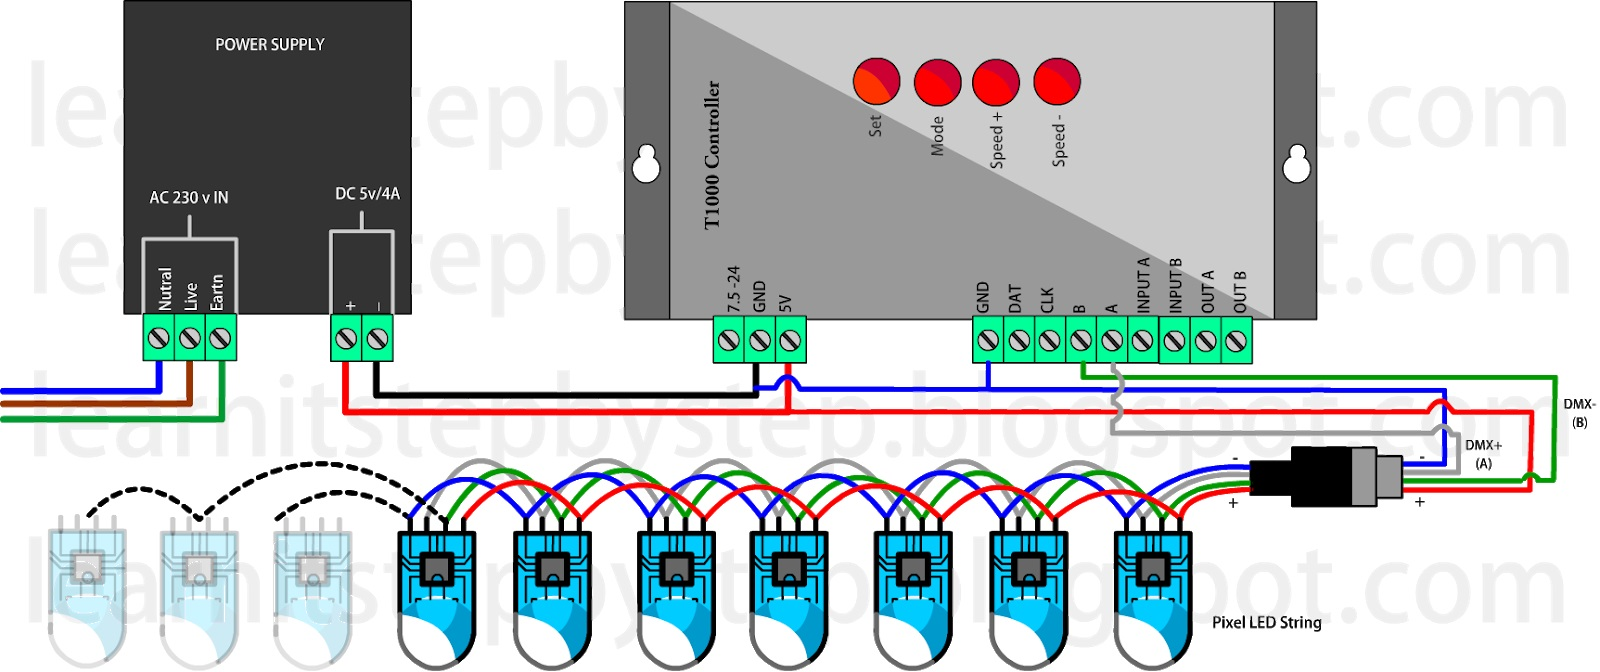 wiring of the t 1000s controller method 5 [ 1600 x 672 Pixel ]